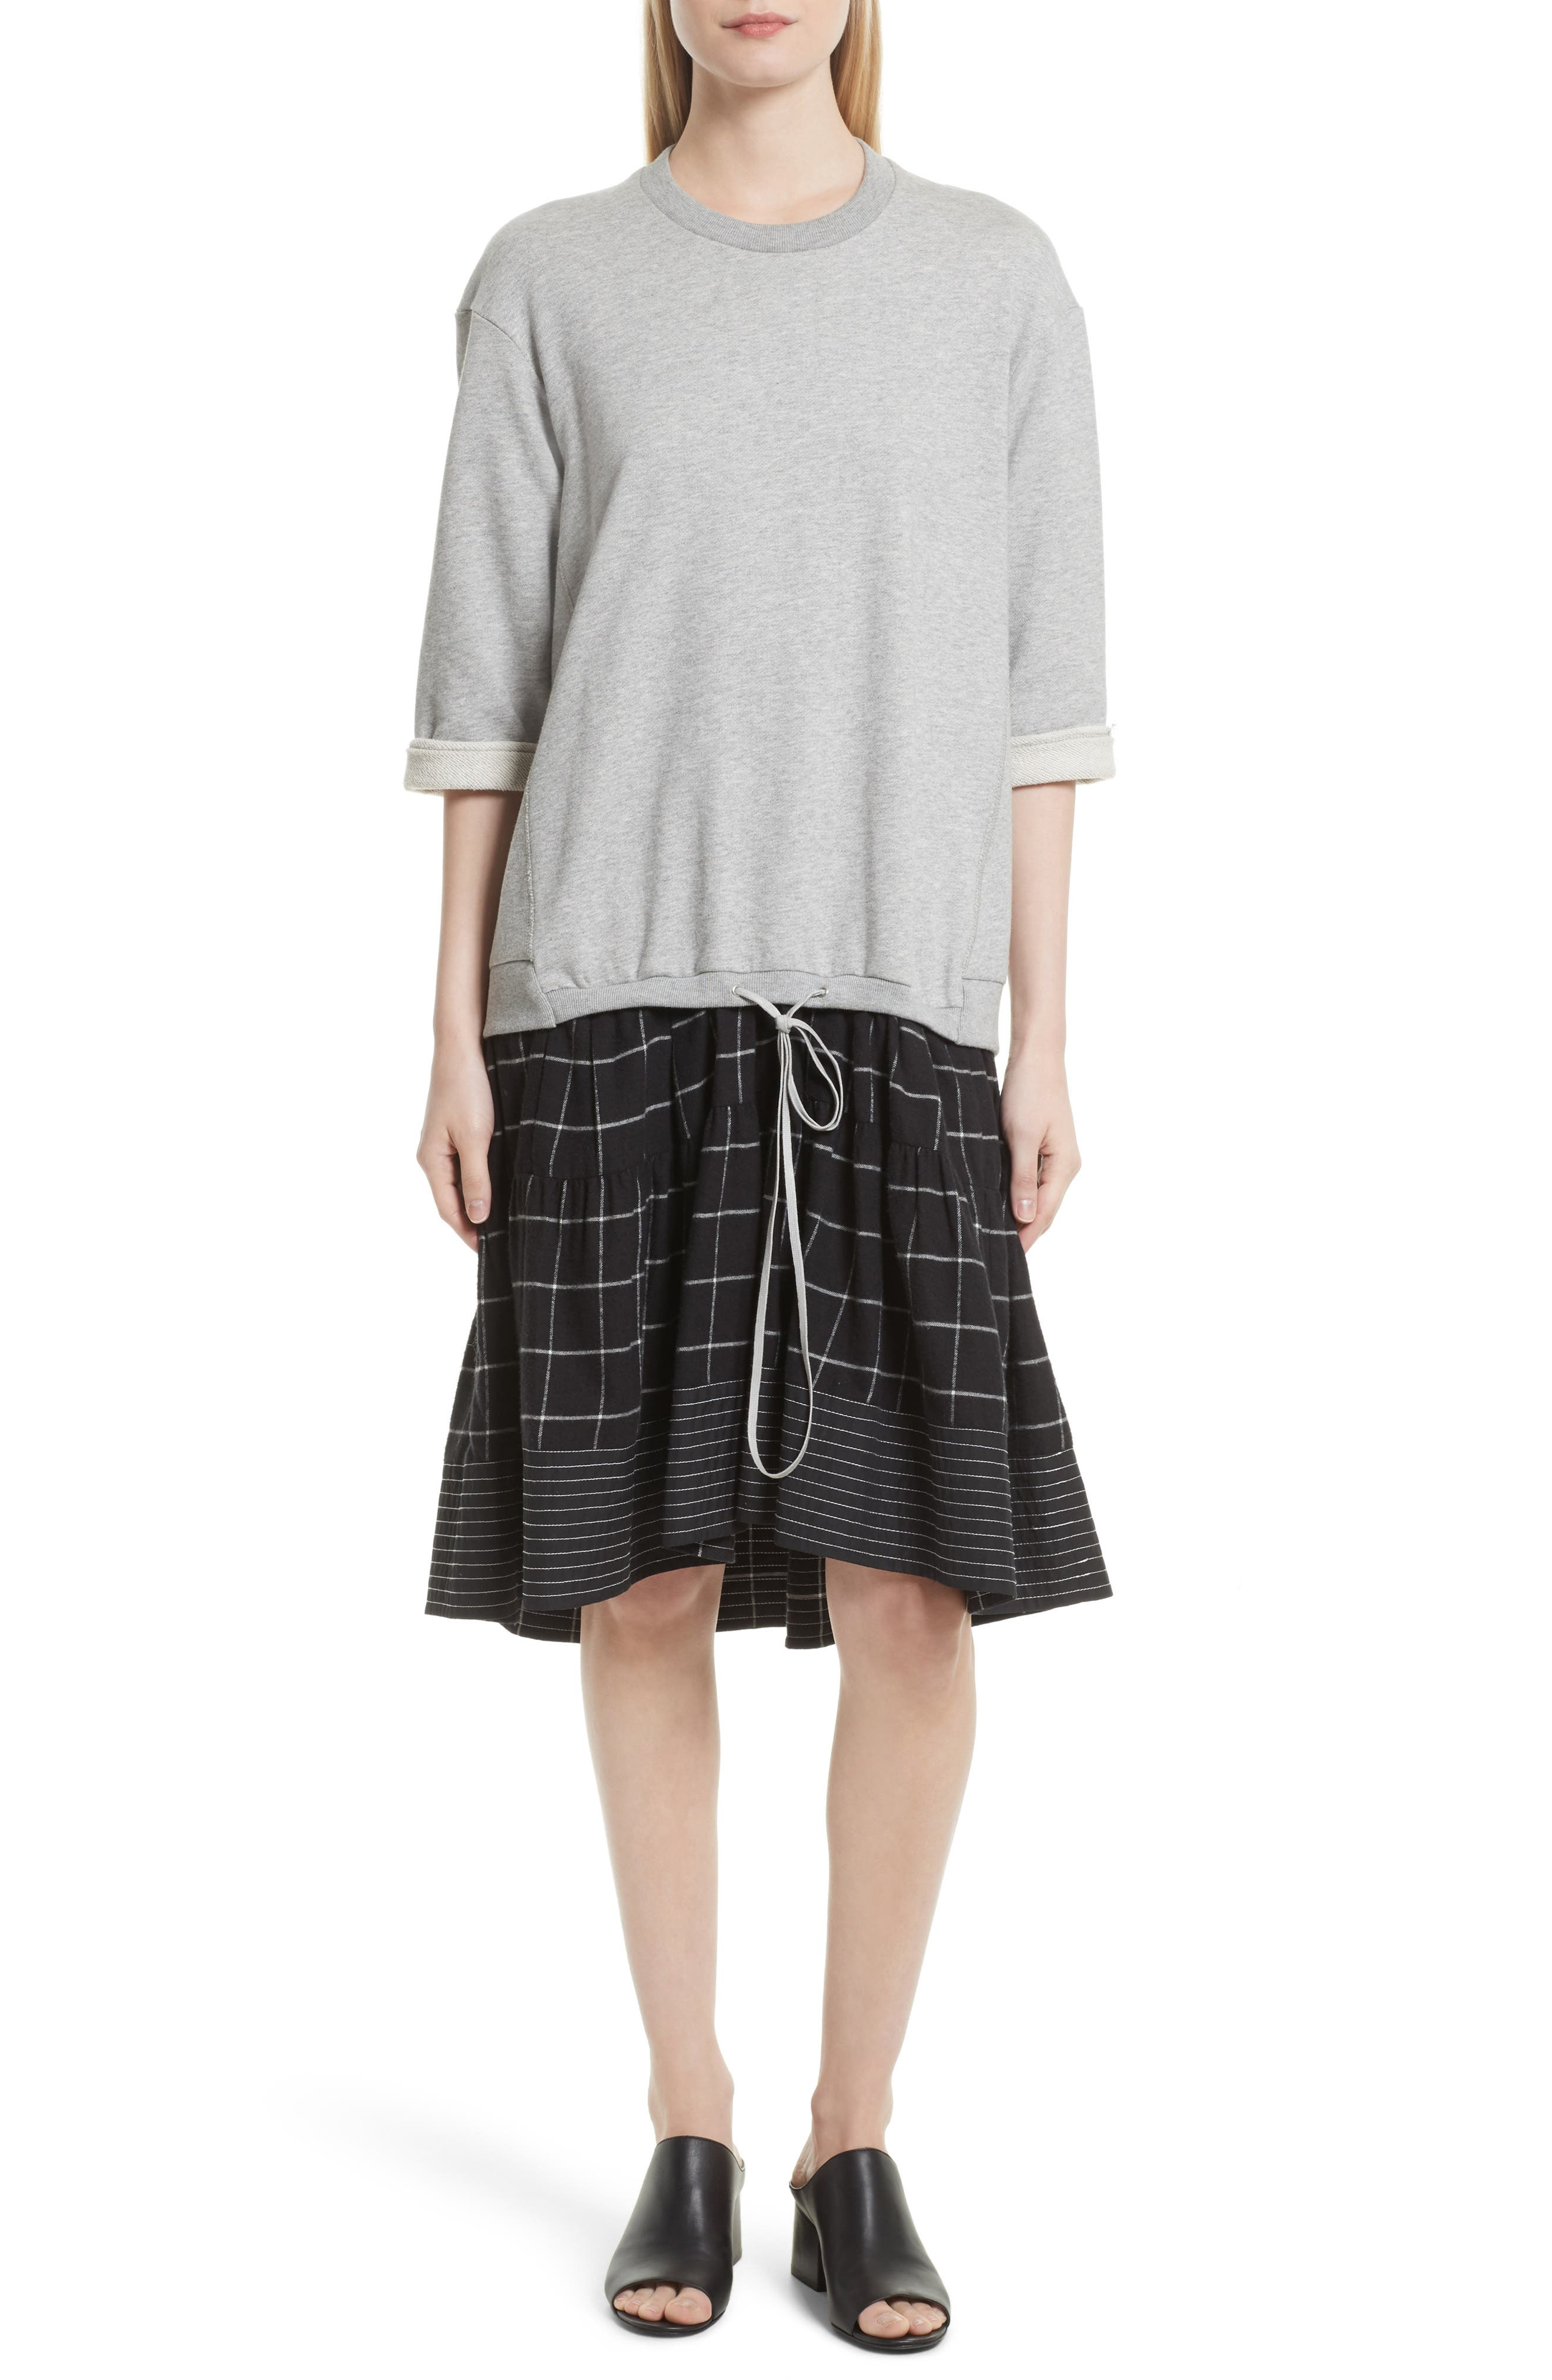 3.1 PHILLIP LIM French Terry Combo Dress